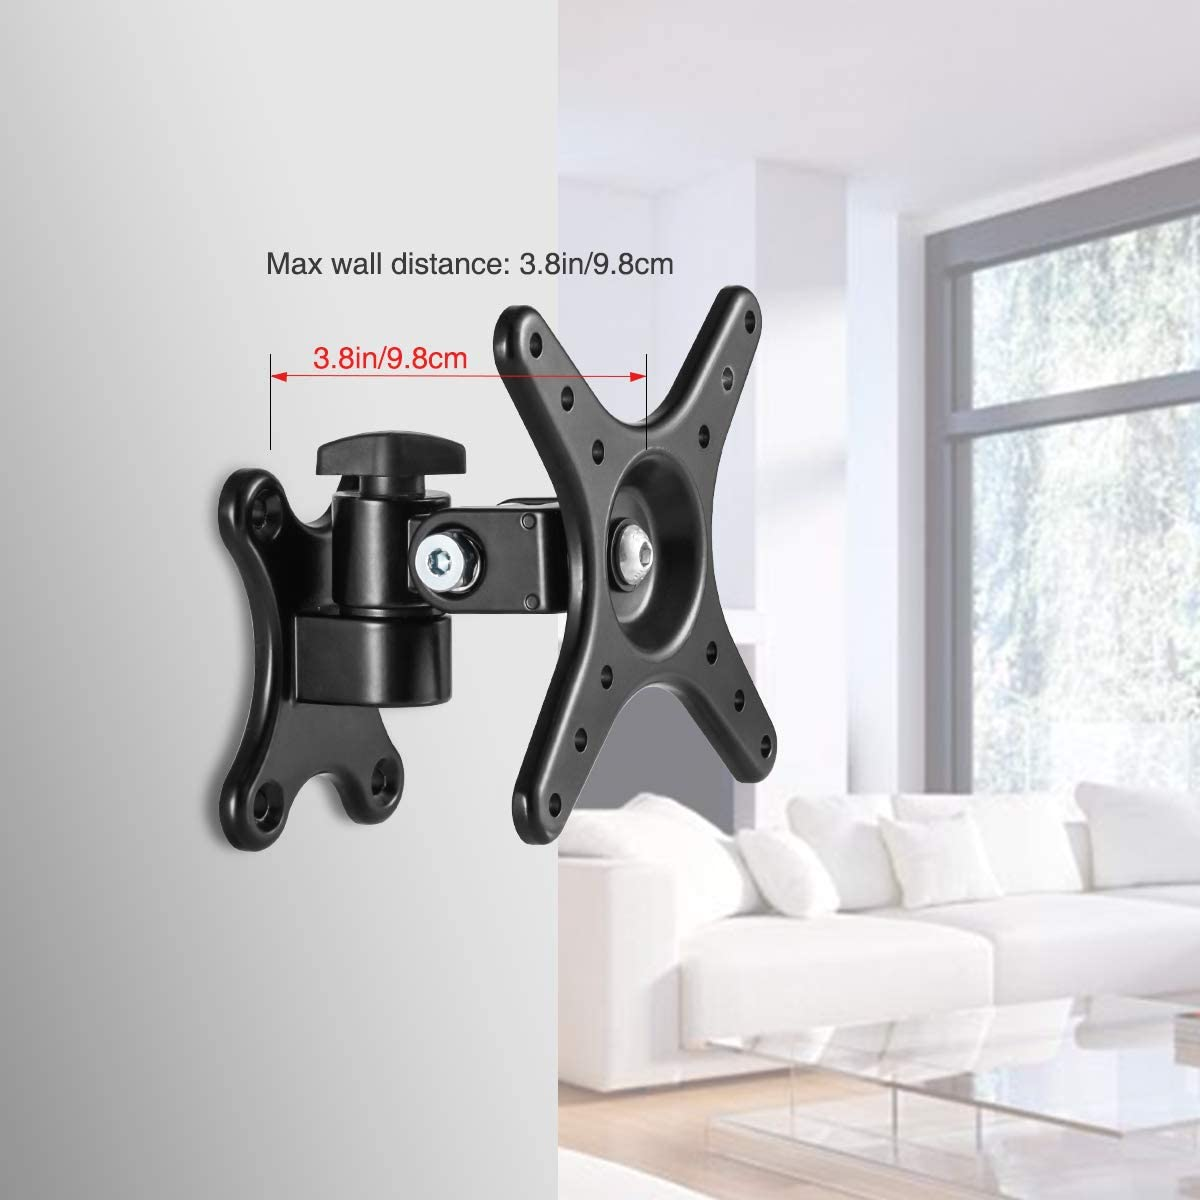 Loutytuo TV Monitor Wall Mount Bracket with Adjustable Tilt Swivel, Fits Screen 14 to 27 Inch, 50/75/100 VESA Compatible, Weight 22lbs (no arm)